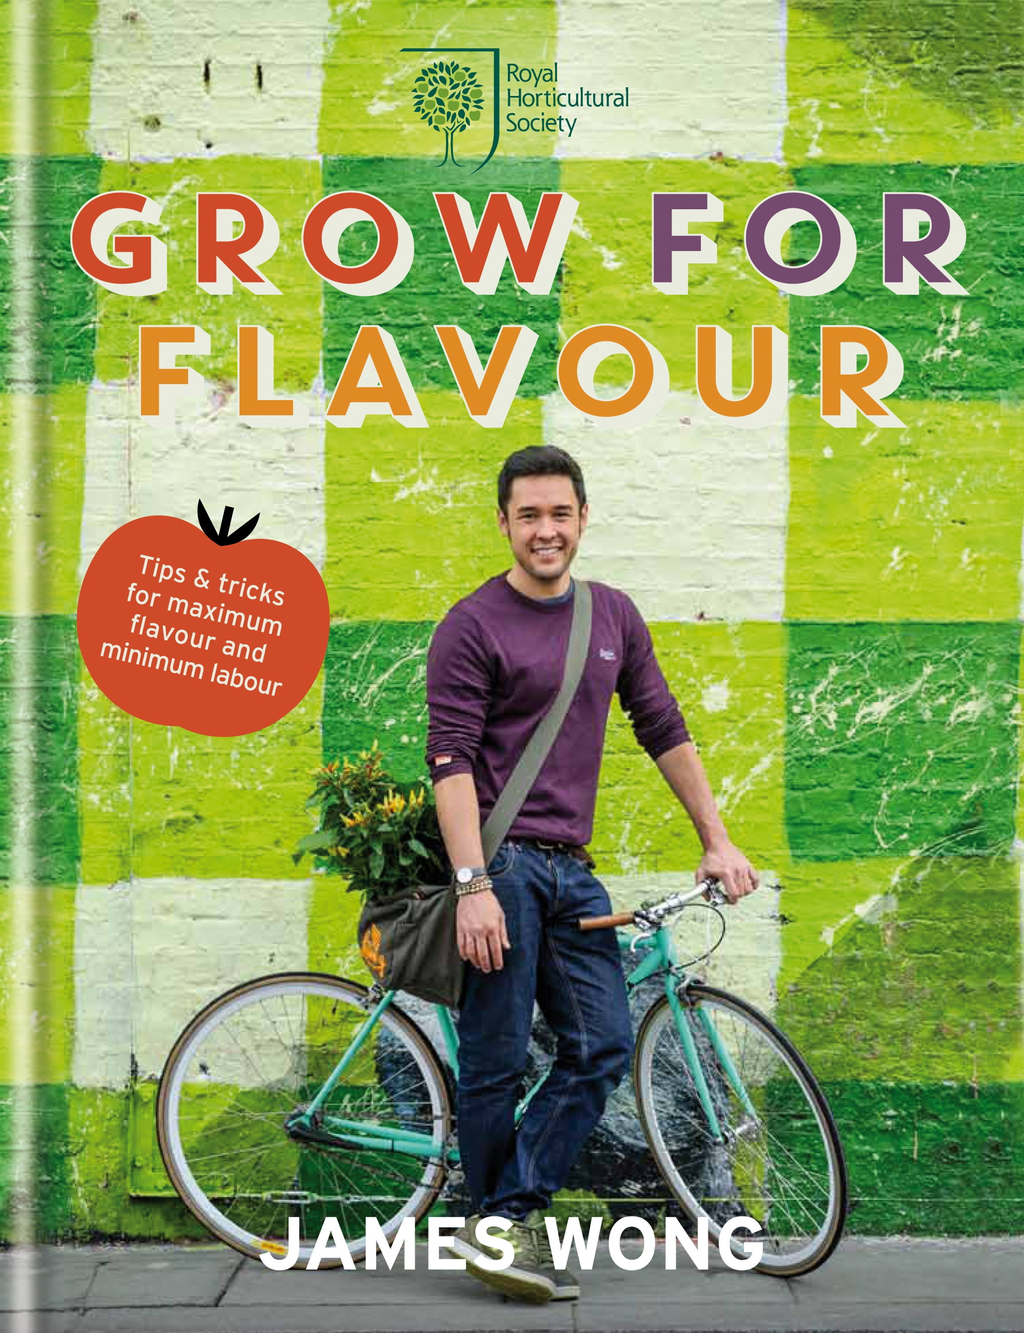 RHS Grow for Flavour Tips & tricks to supercharge the flavour of homegrown harvests